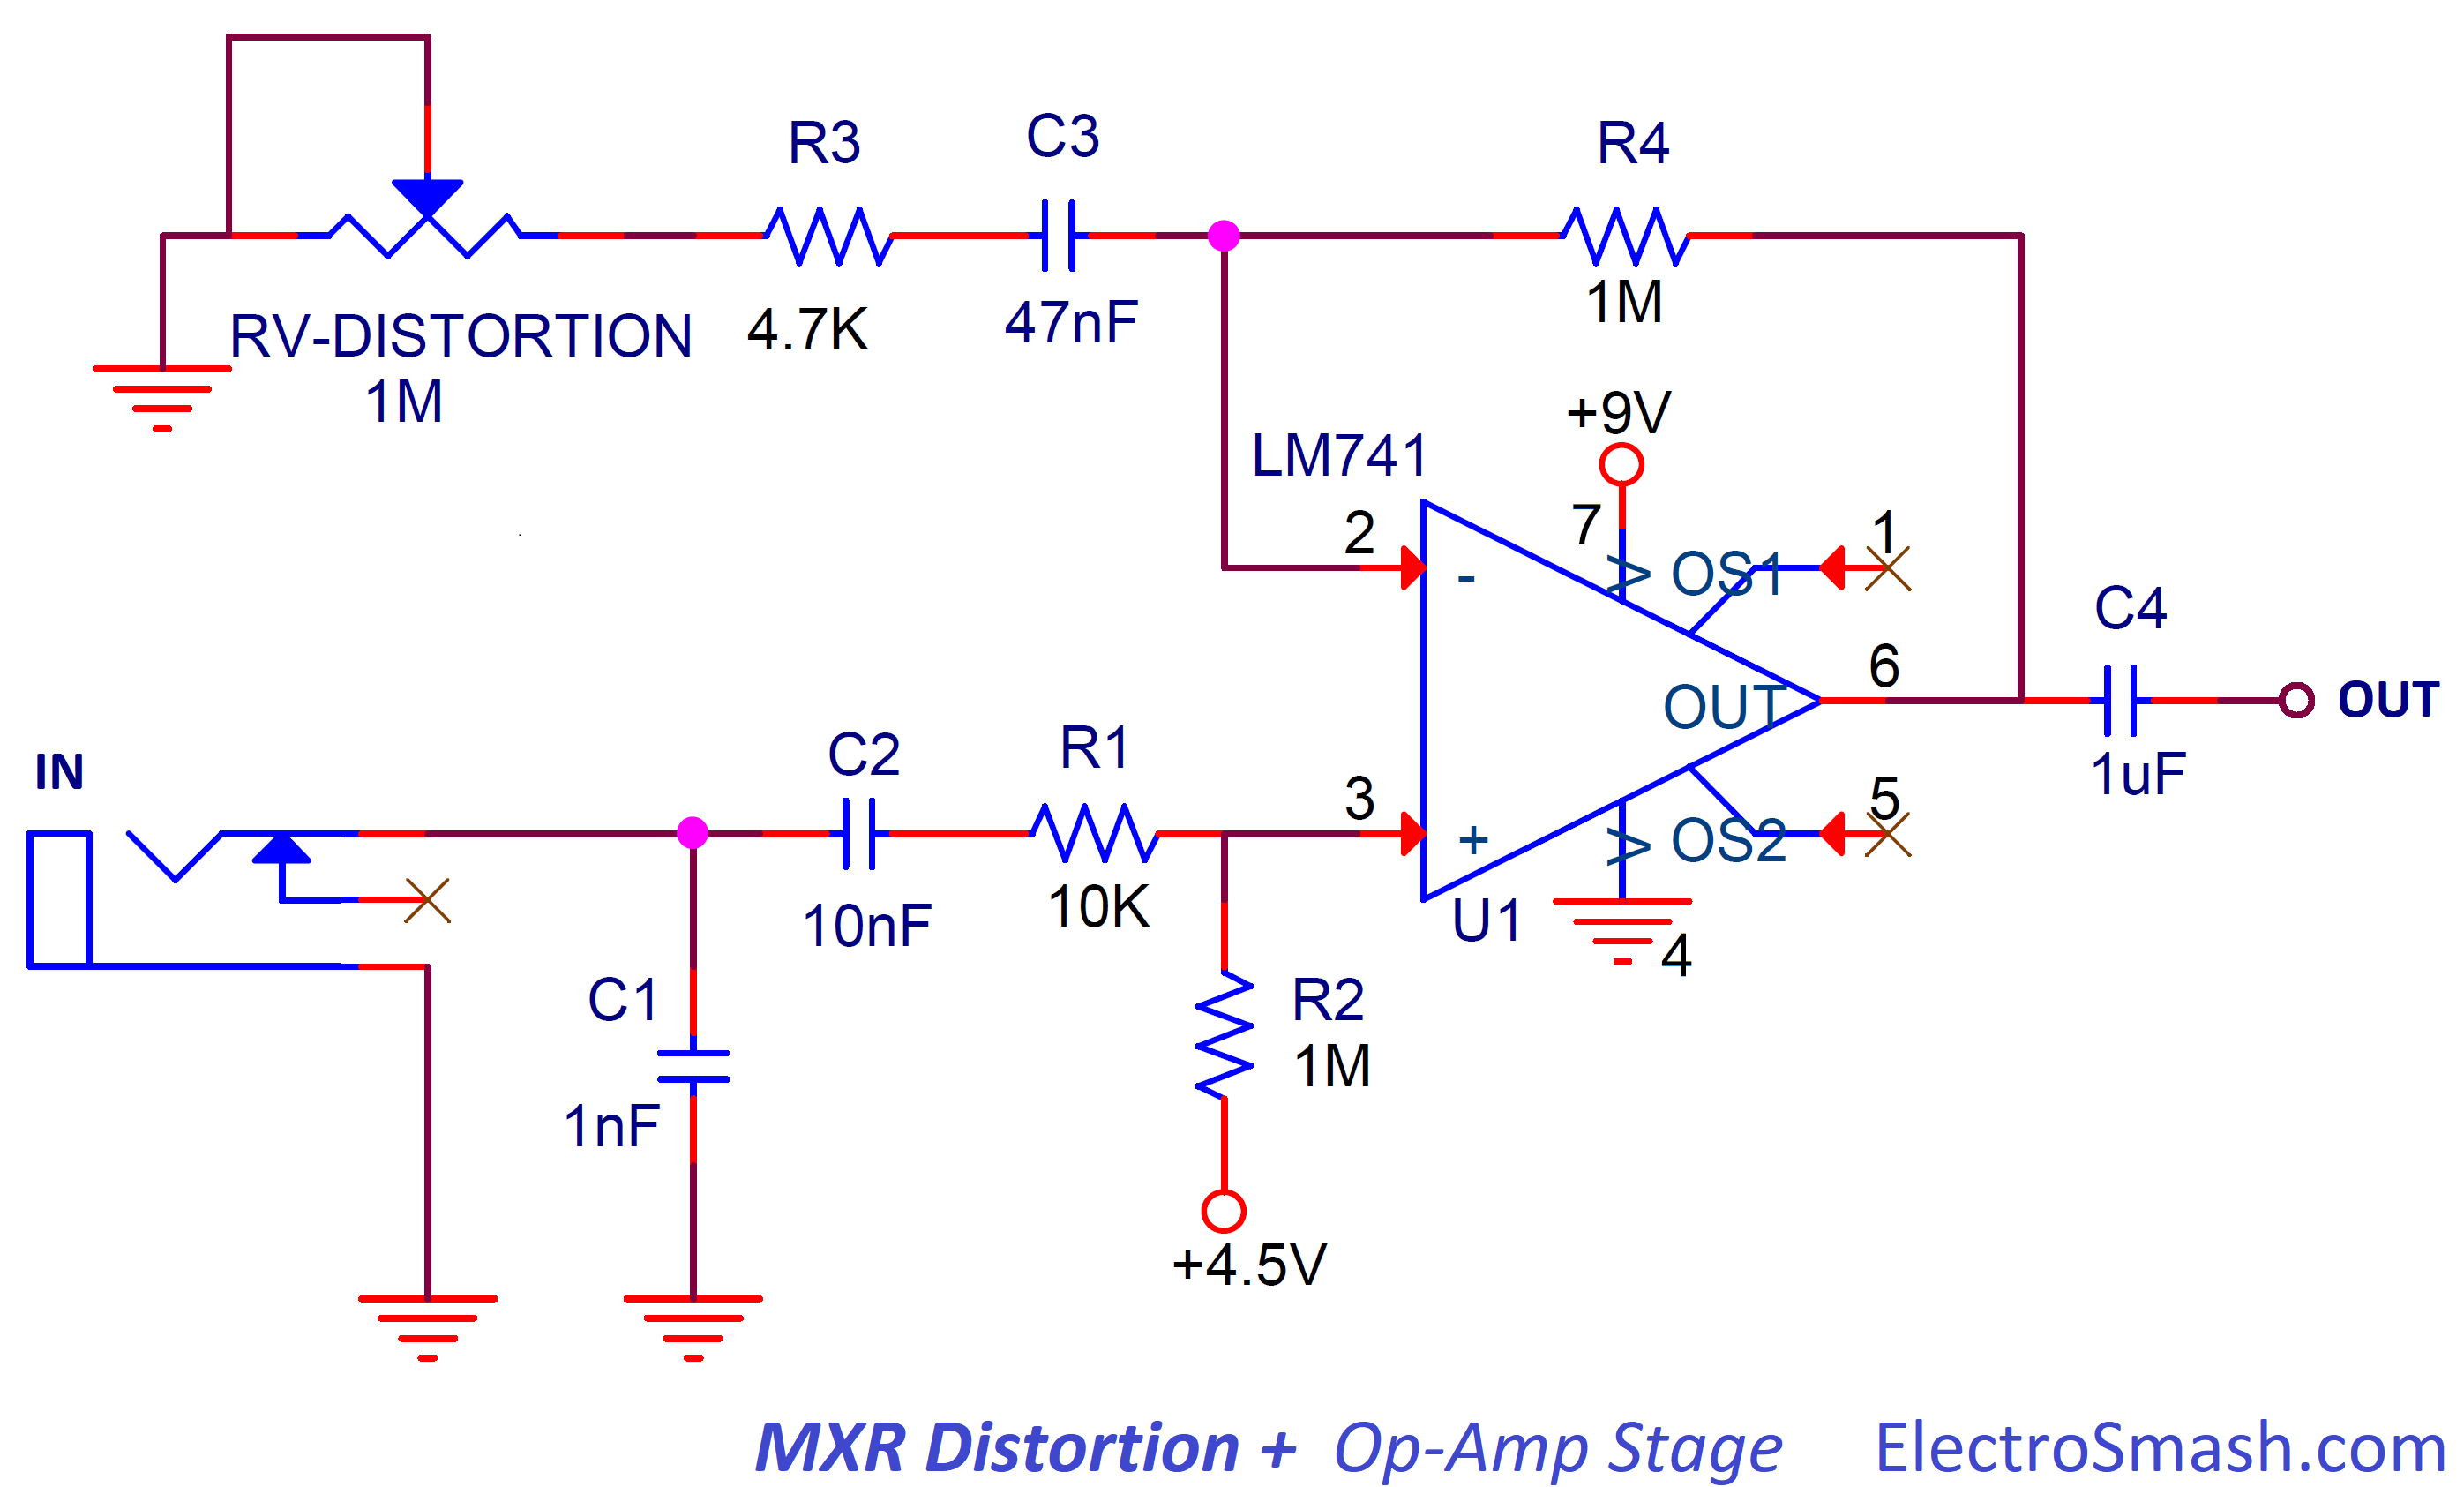 Electrosmash Mxr Distortion Circuit Analysis Note These Circuits Work Best With A High Slew Rate Opamp Such As 12 Op Amp Amplifier Stage